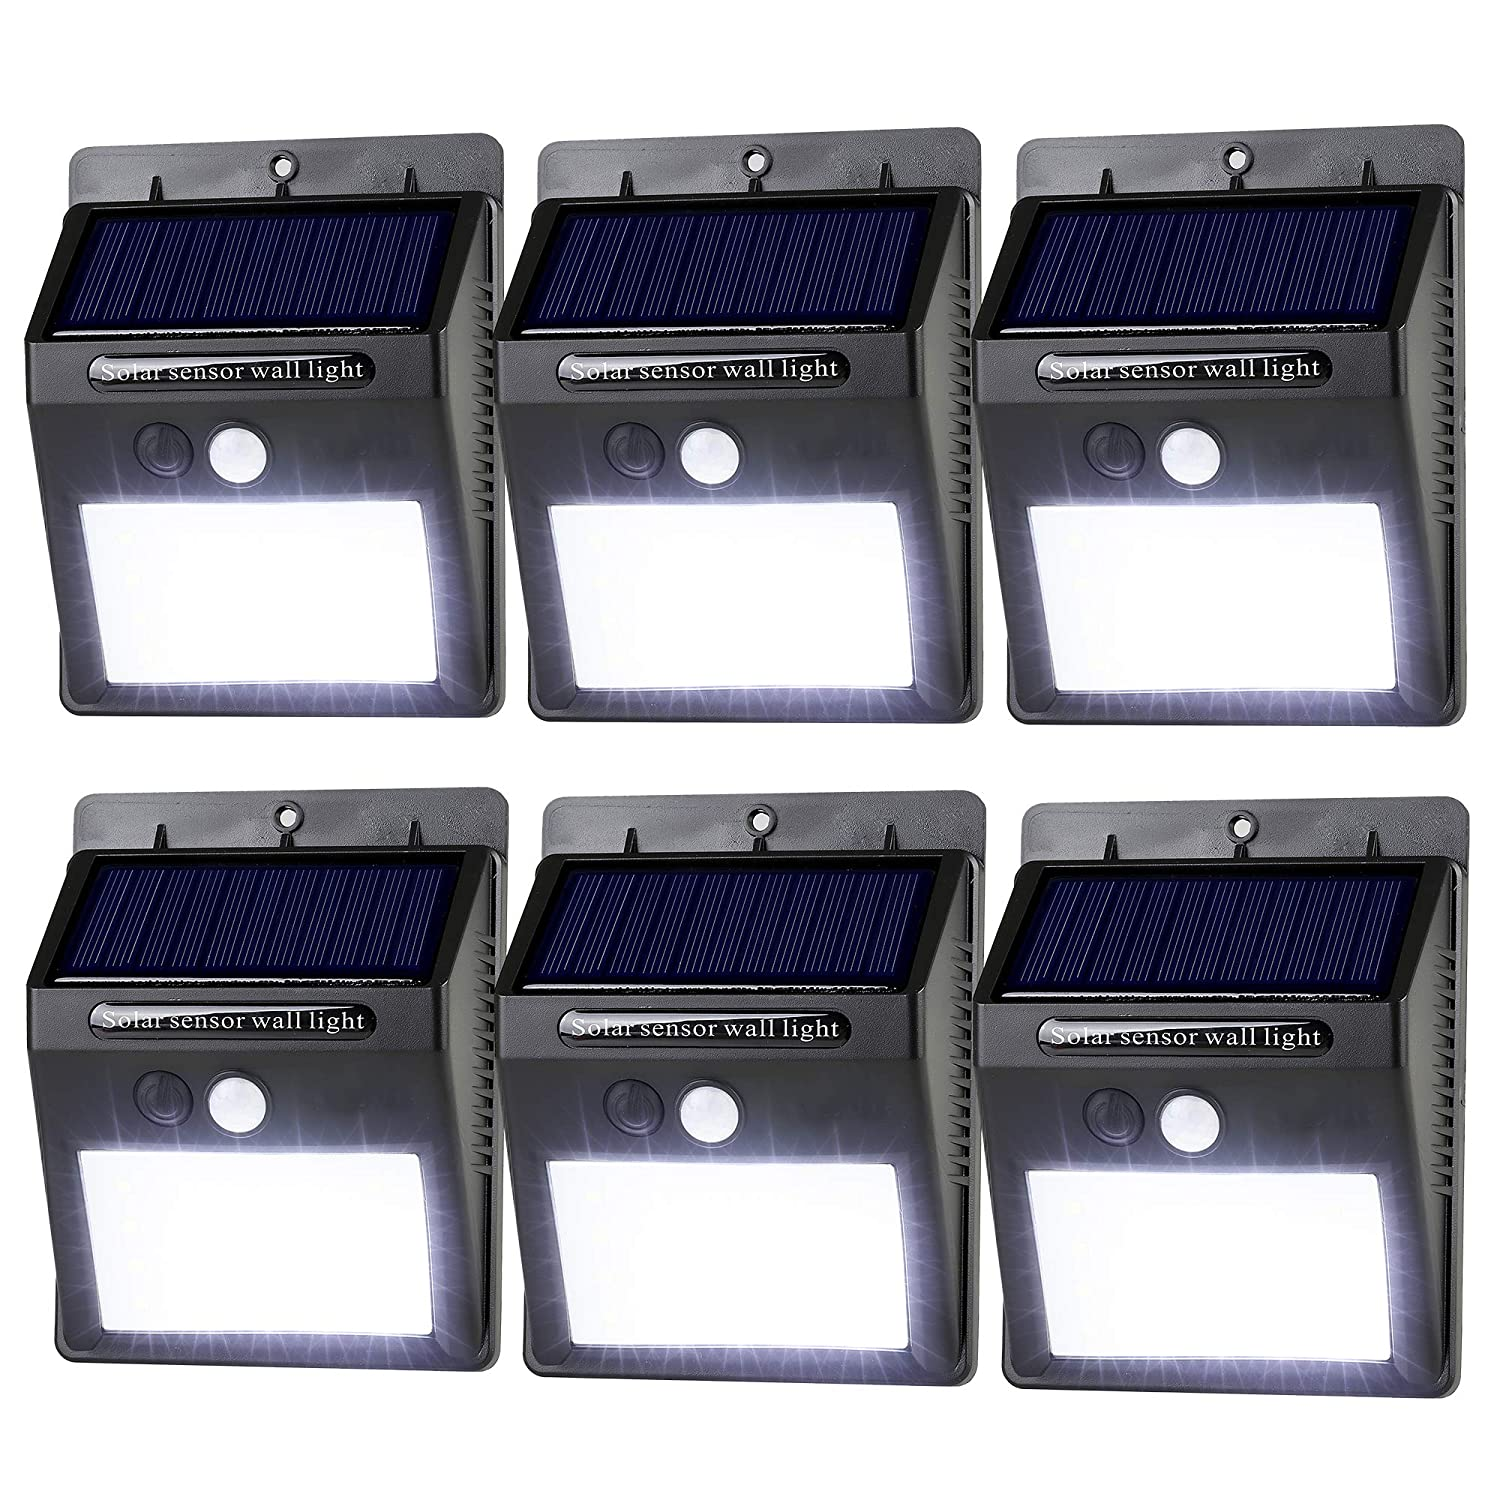 LeadTop Solar Motion Sensor Light 20 LED Solar Powered Wireless Weatherproof Security Wall Lights for Outdoor Yard Garden Driveway Pathway Pool 6-Pack